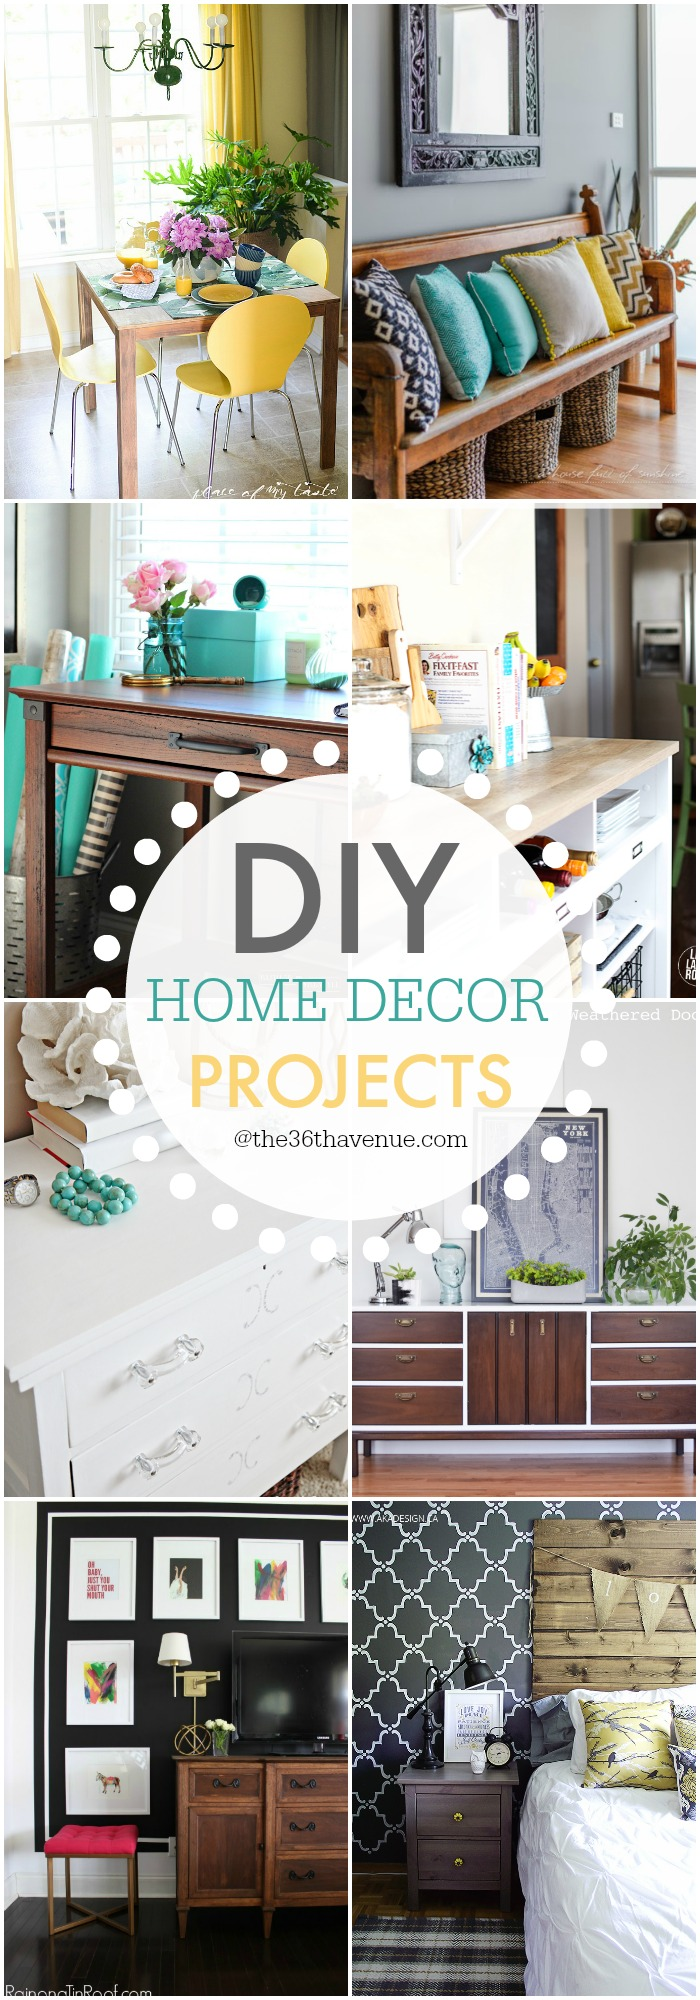 The 36th avenue diy home decor projects and ideas the for House and home decorating